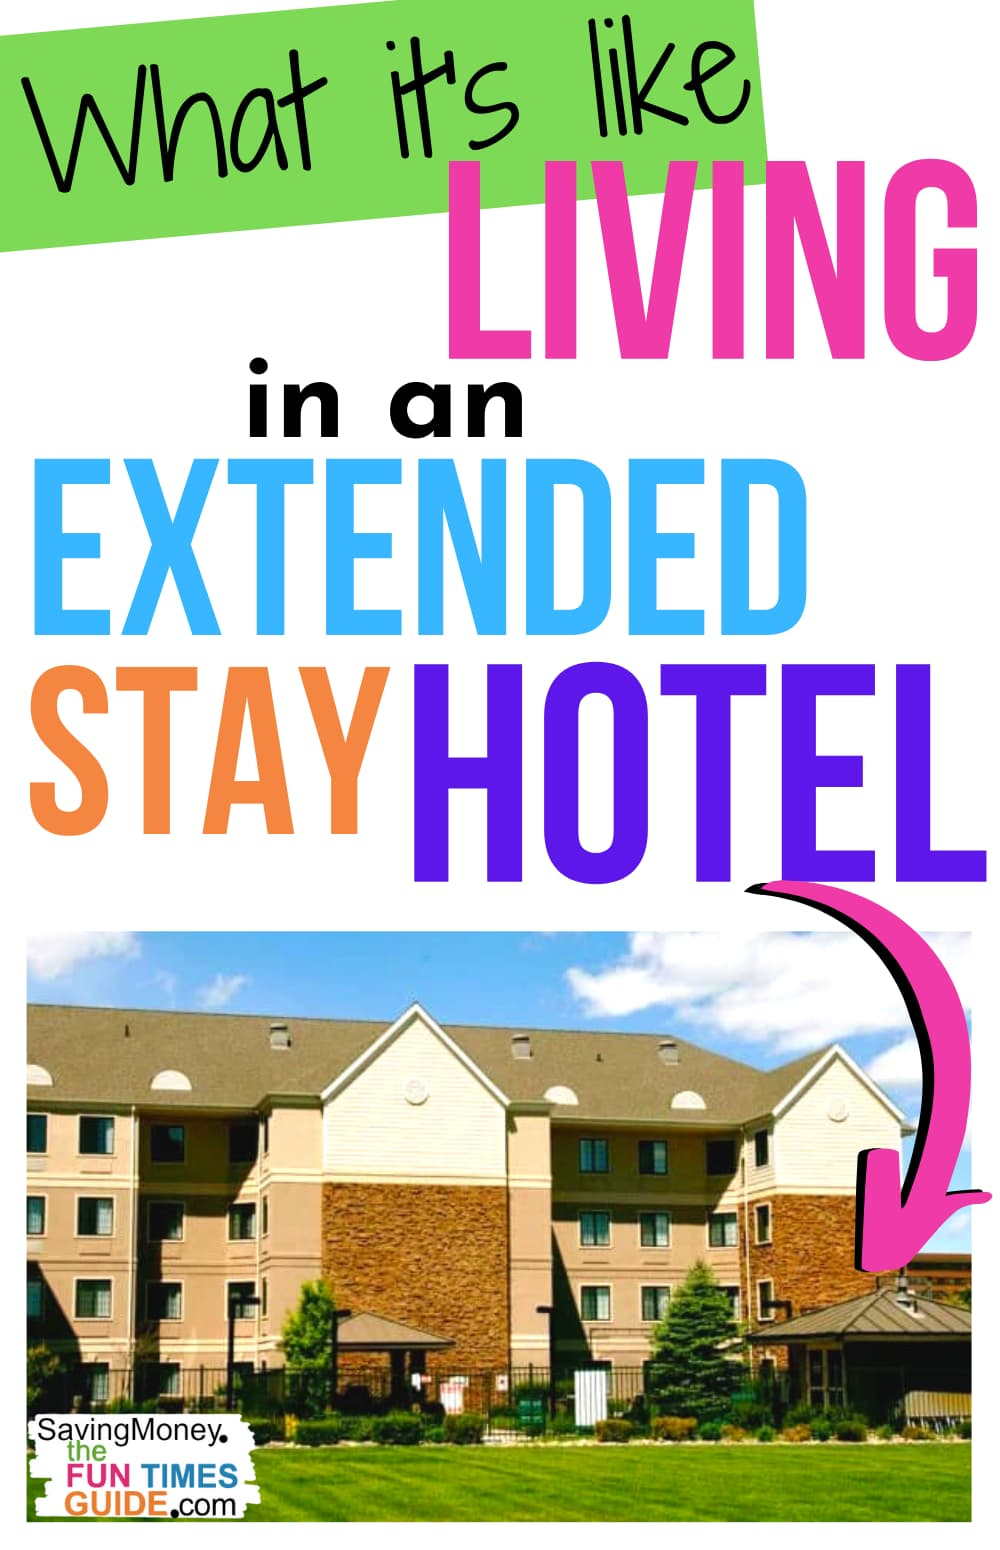 Are Extended Stay Motels A Good Option For Temporary Housing? (Hint: YES!)